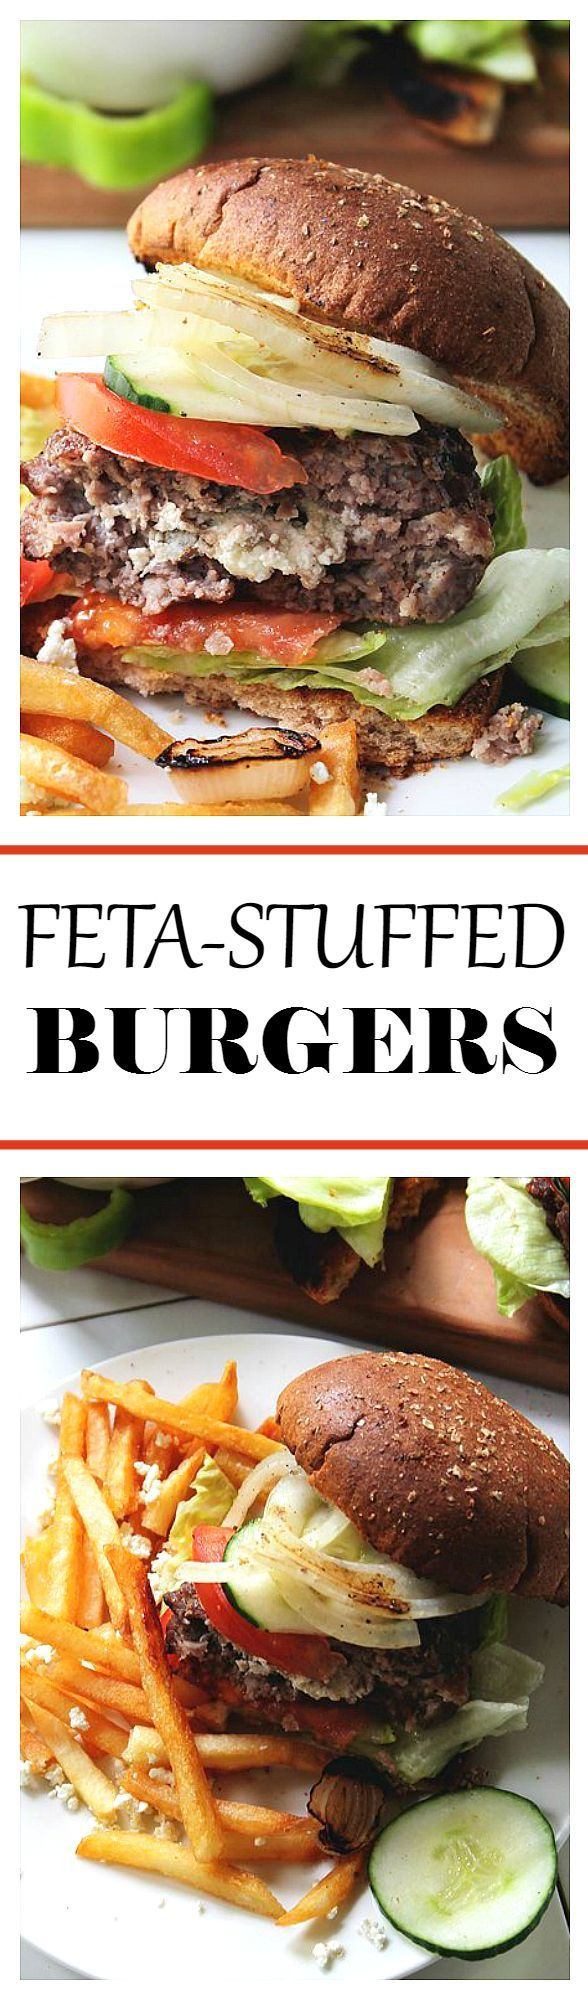 Feta-Stuffed Burgers - Tangy feta cheese is the surprise filling ...